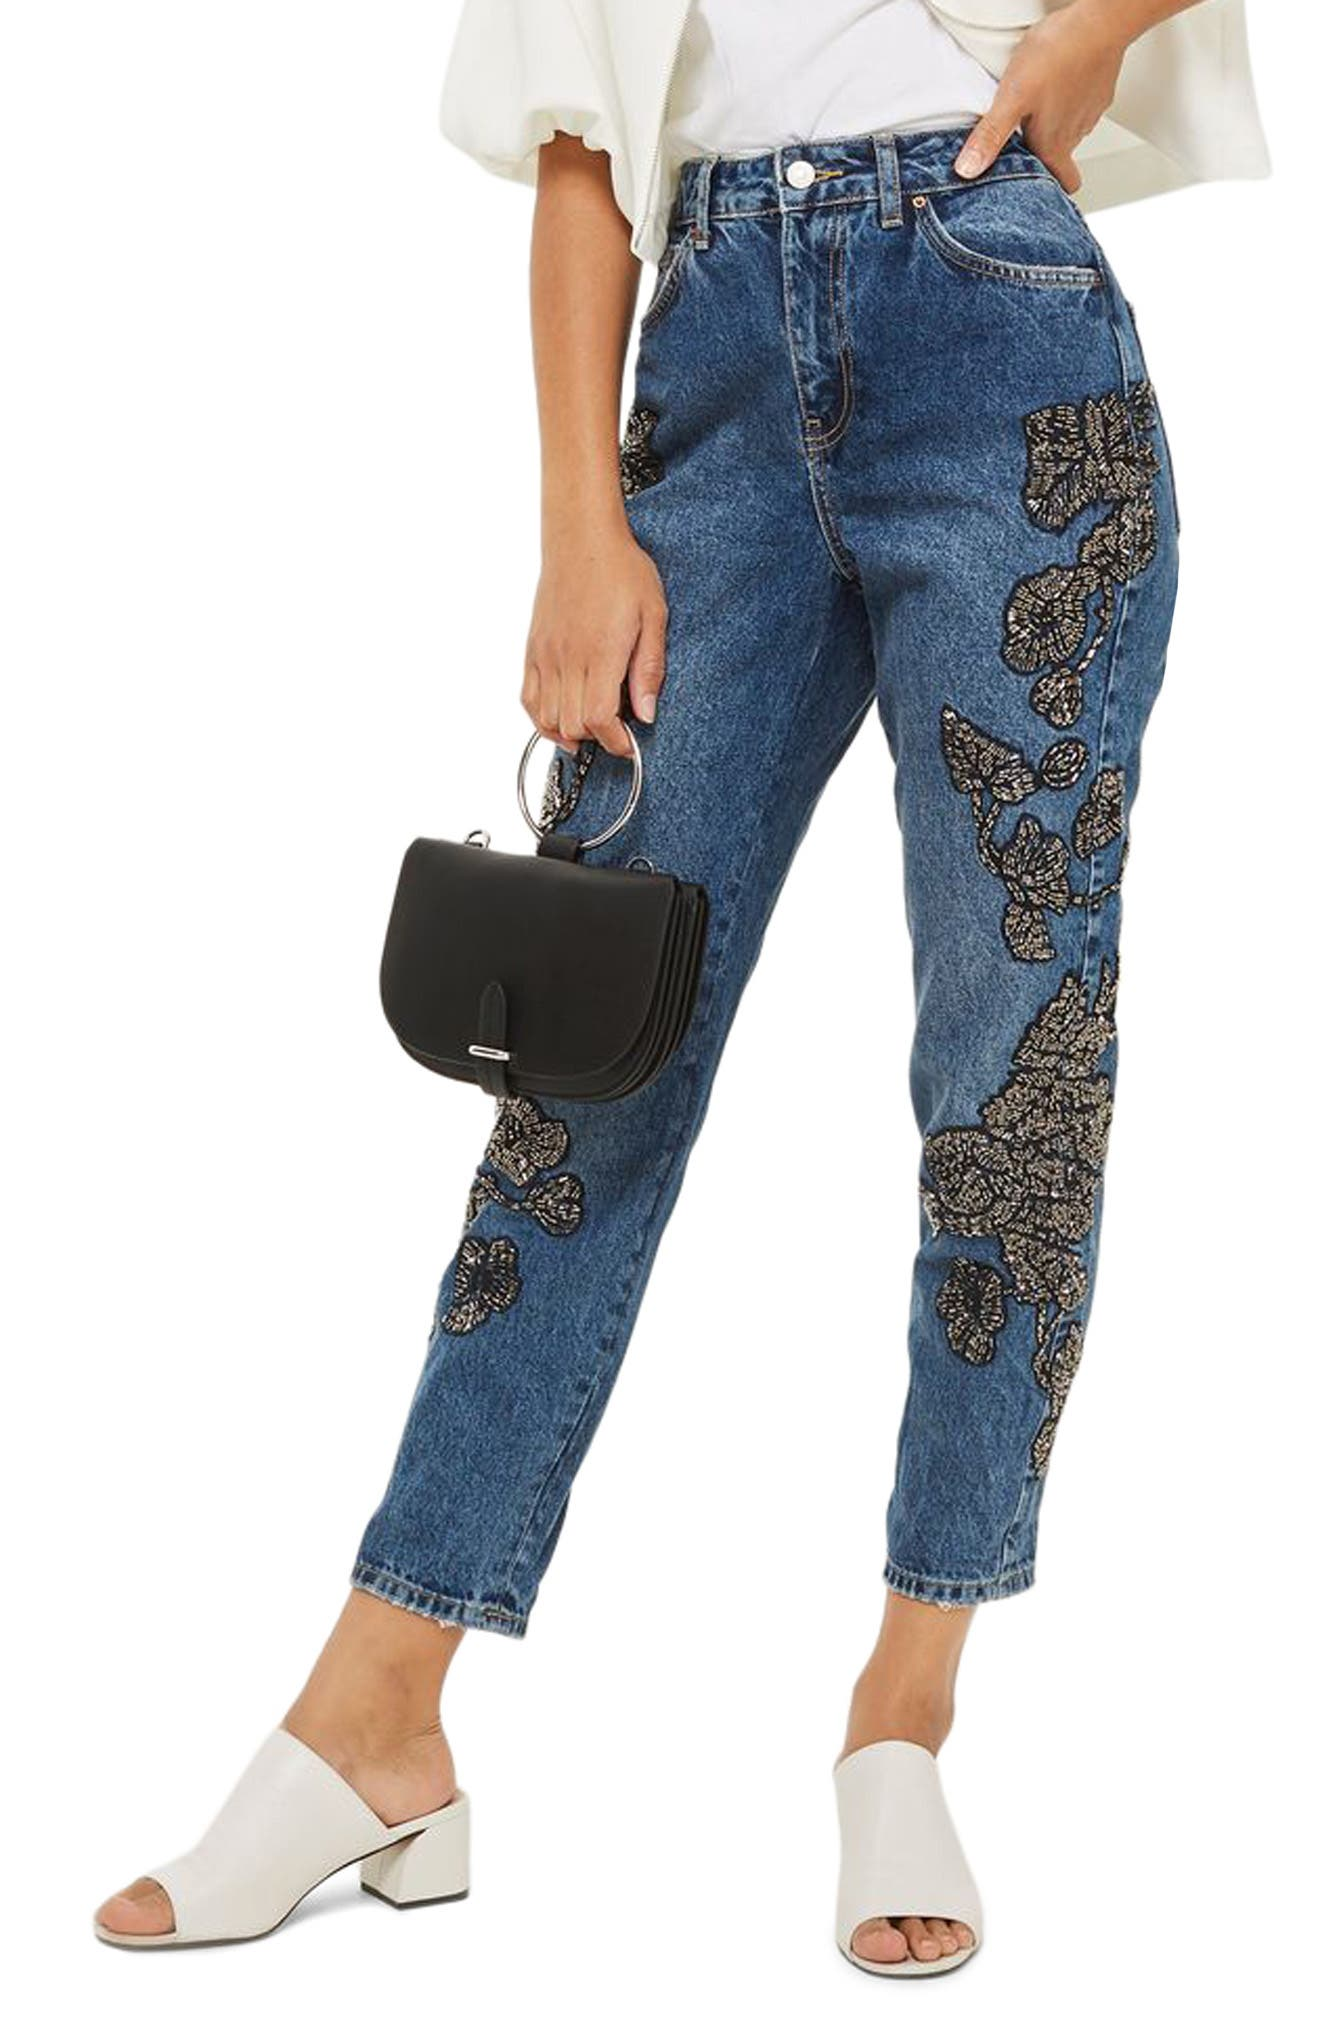 English Flower Embellished Mom Jeans,                             Main thumbnail 1, color,                             401